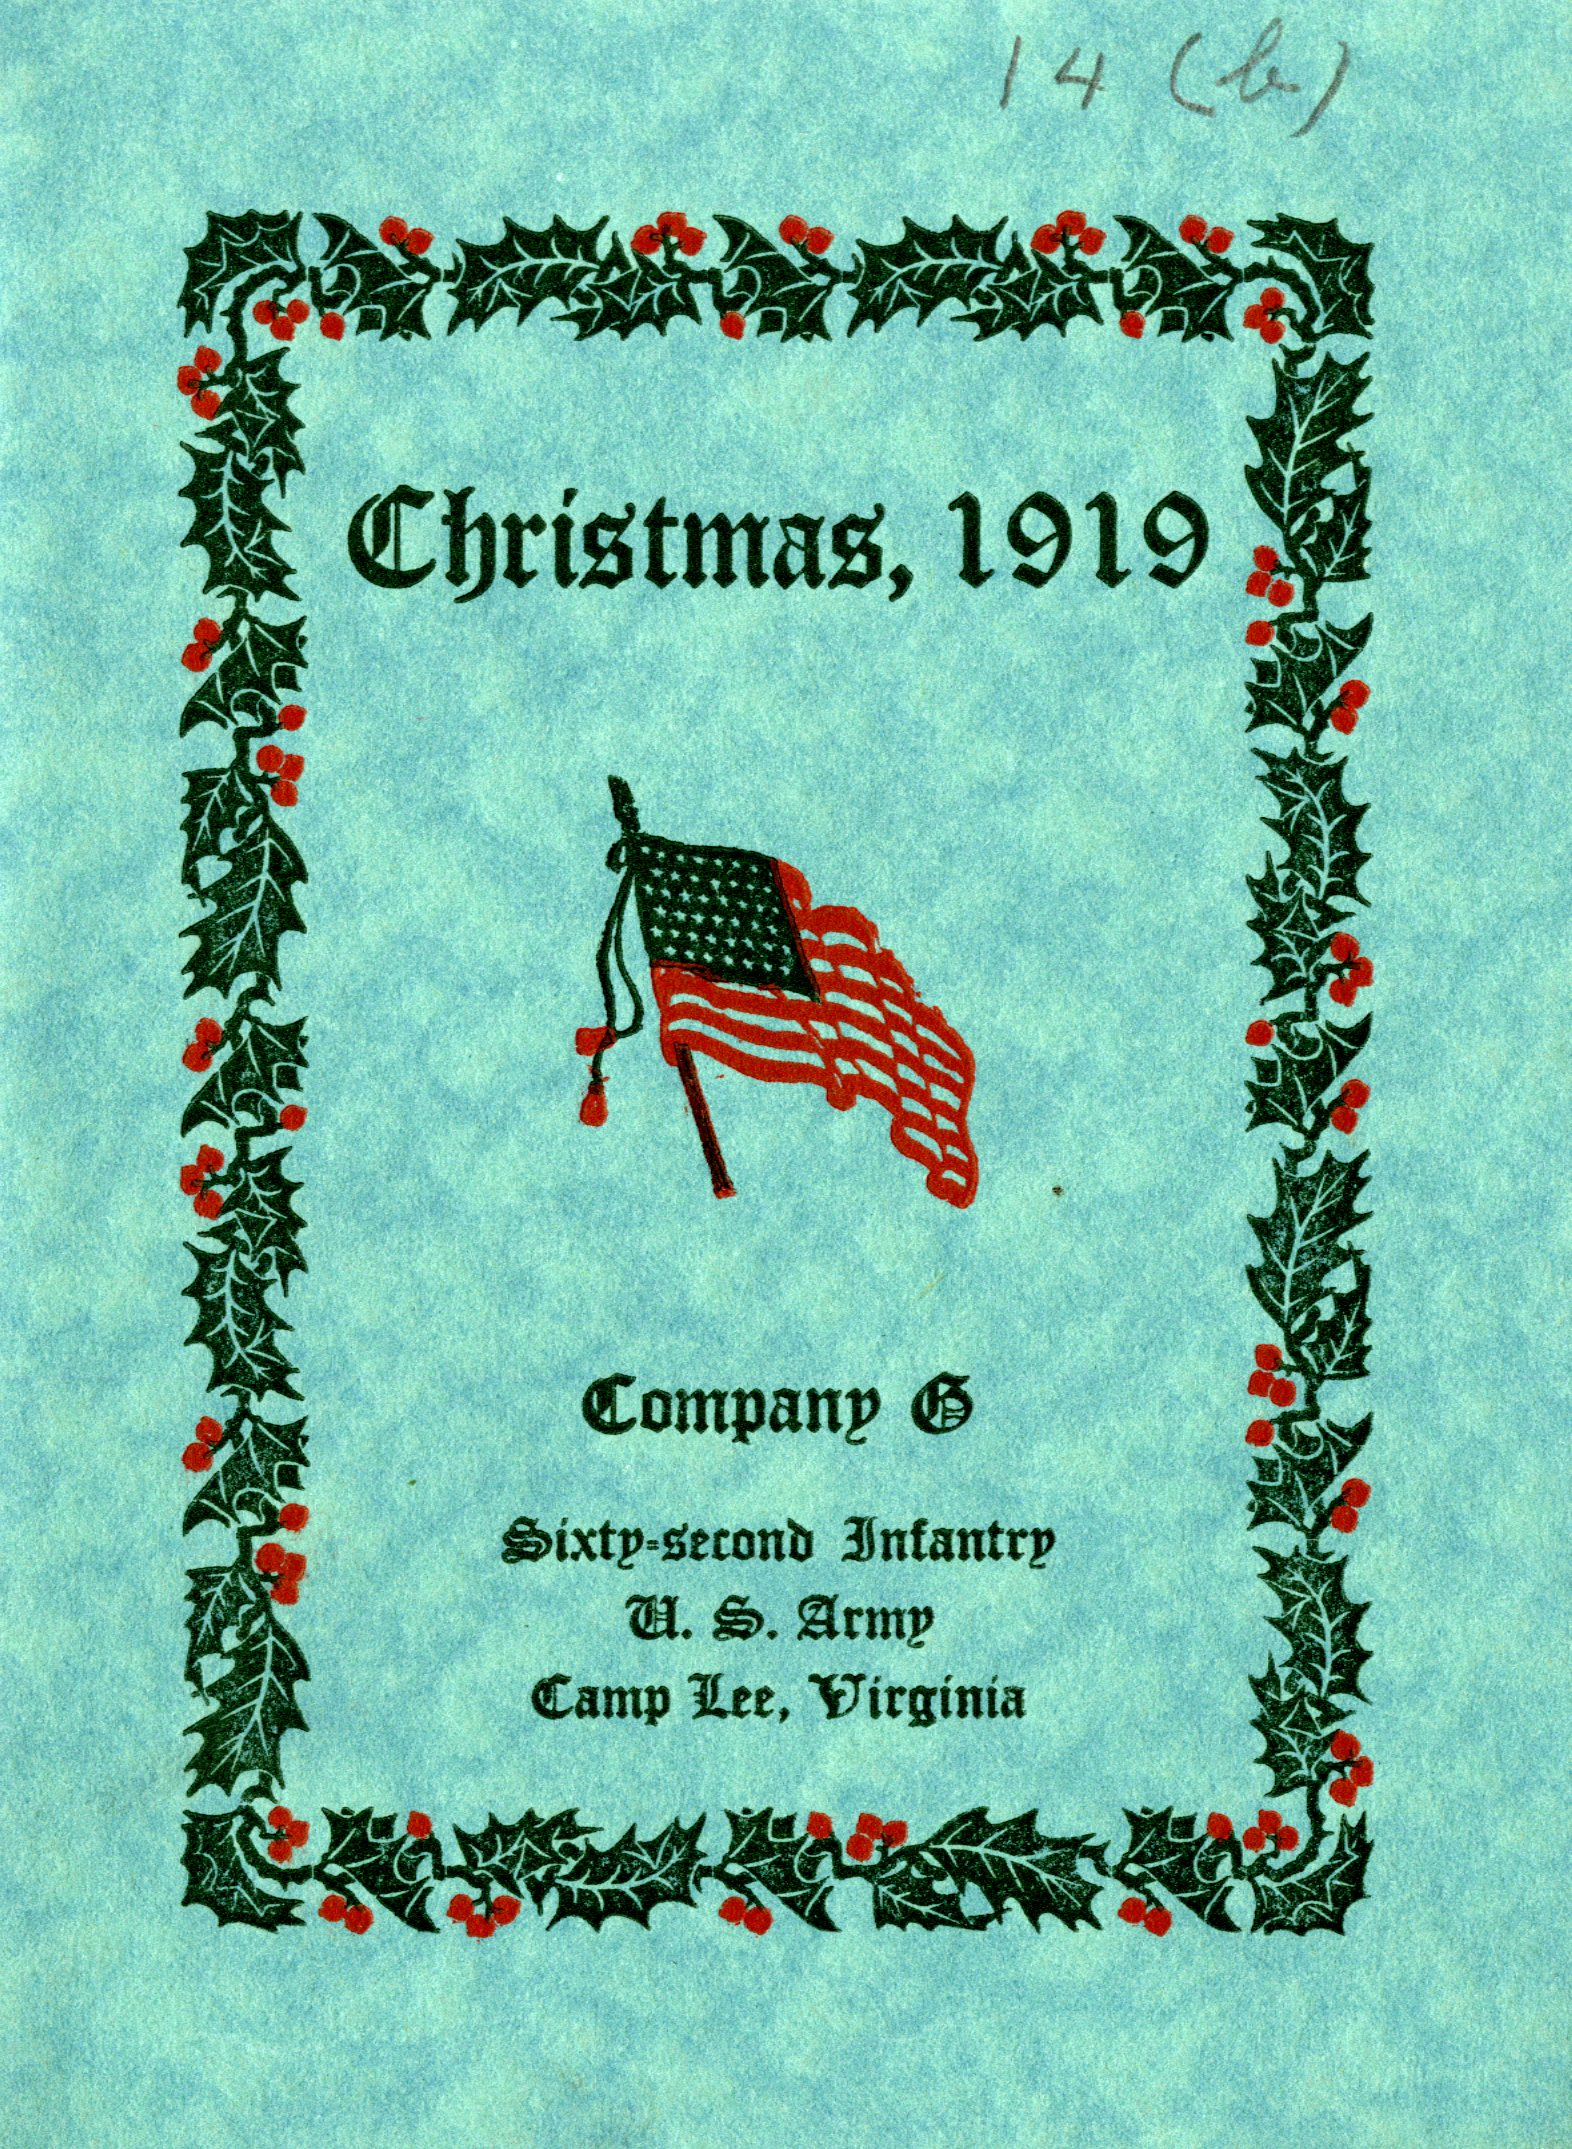 Wartime Christmas at Camp Lee